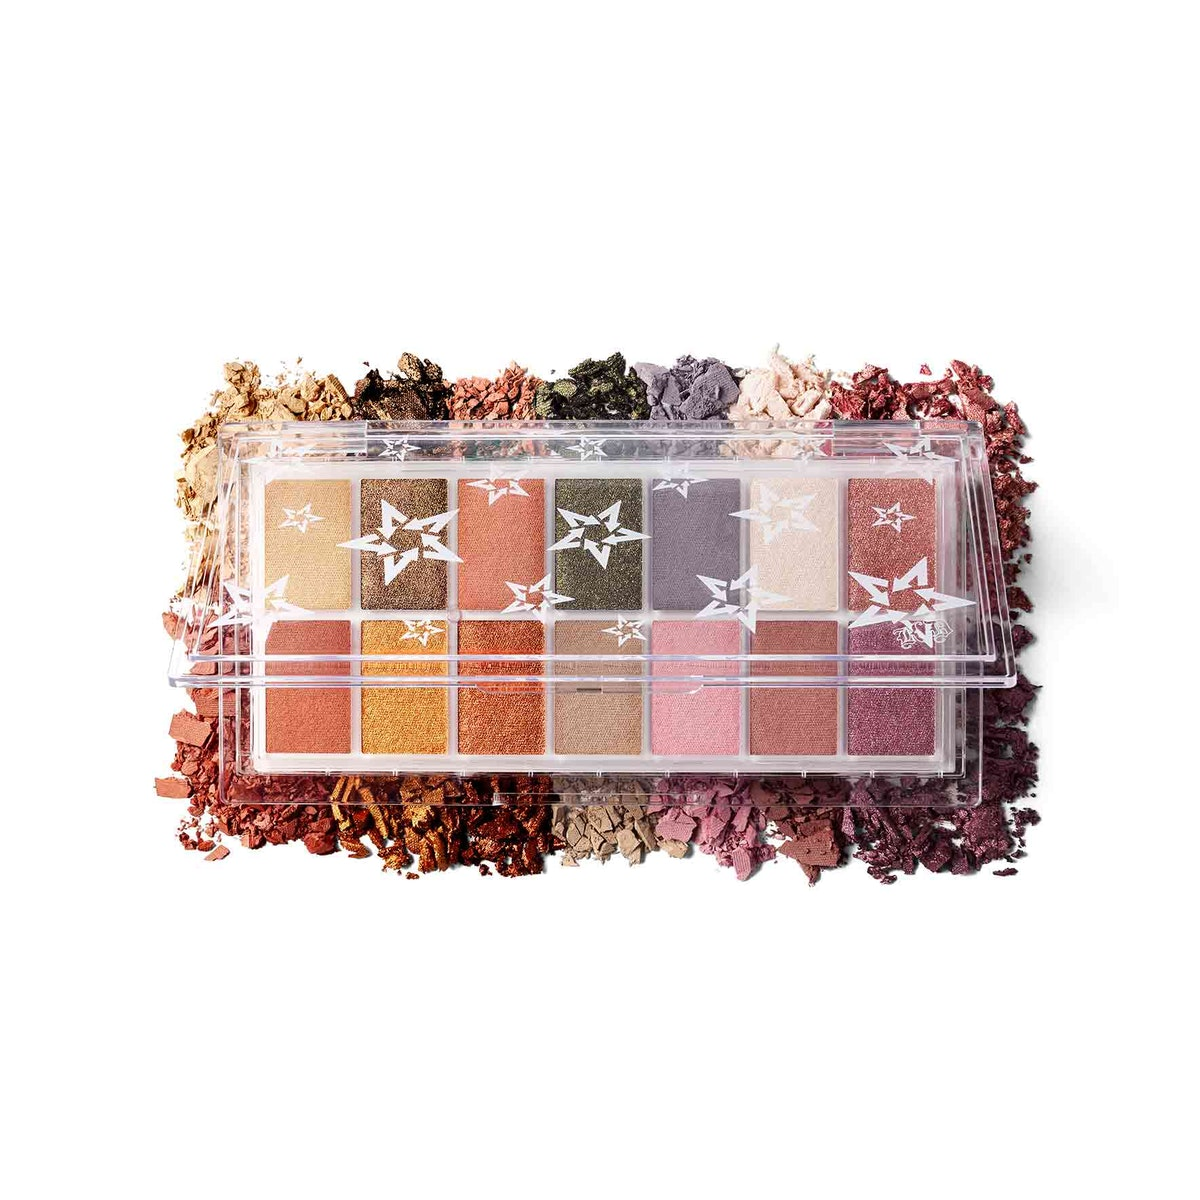 Planet Fanatic Fully Recyclable Wet/Dry Eyeshadow Palette